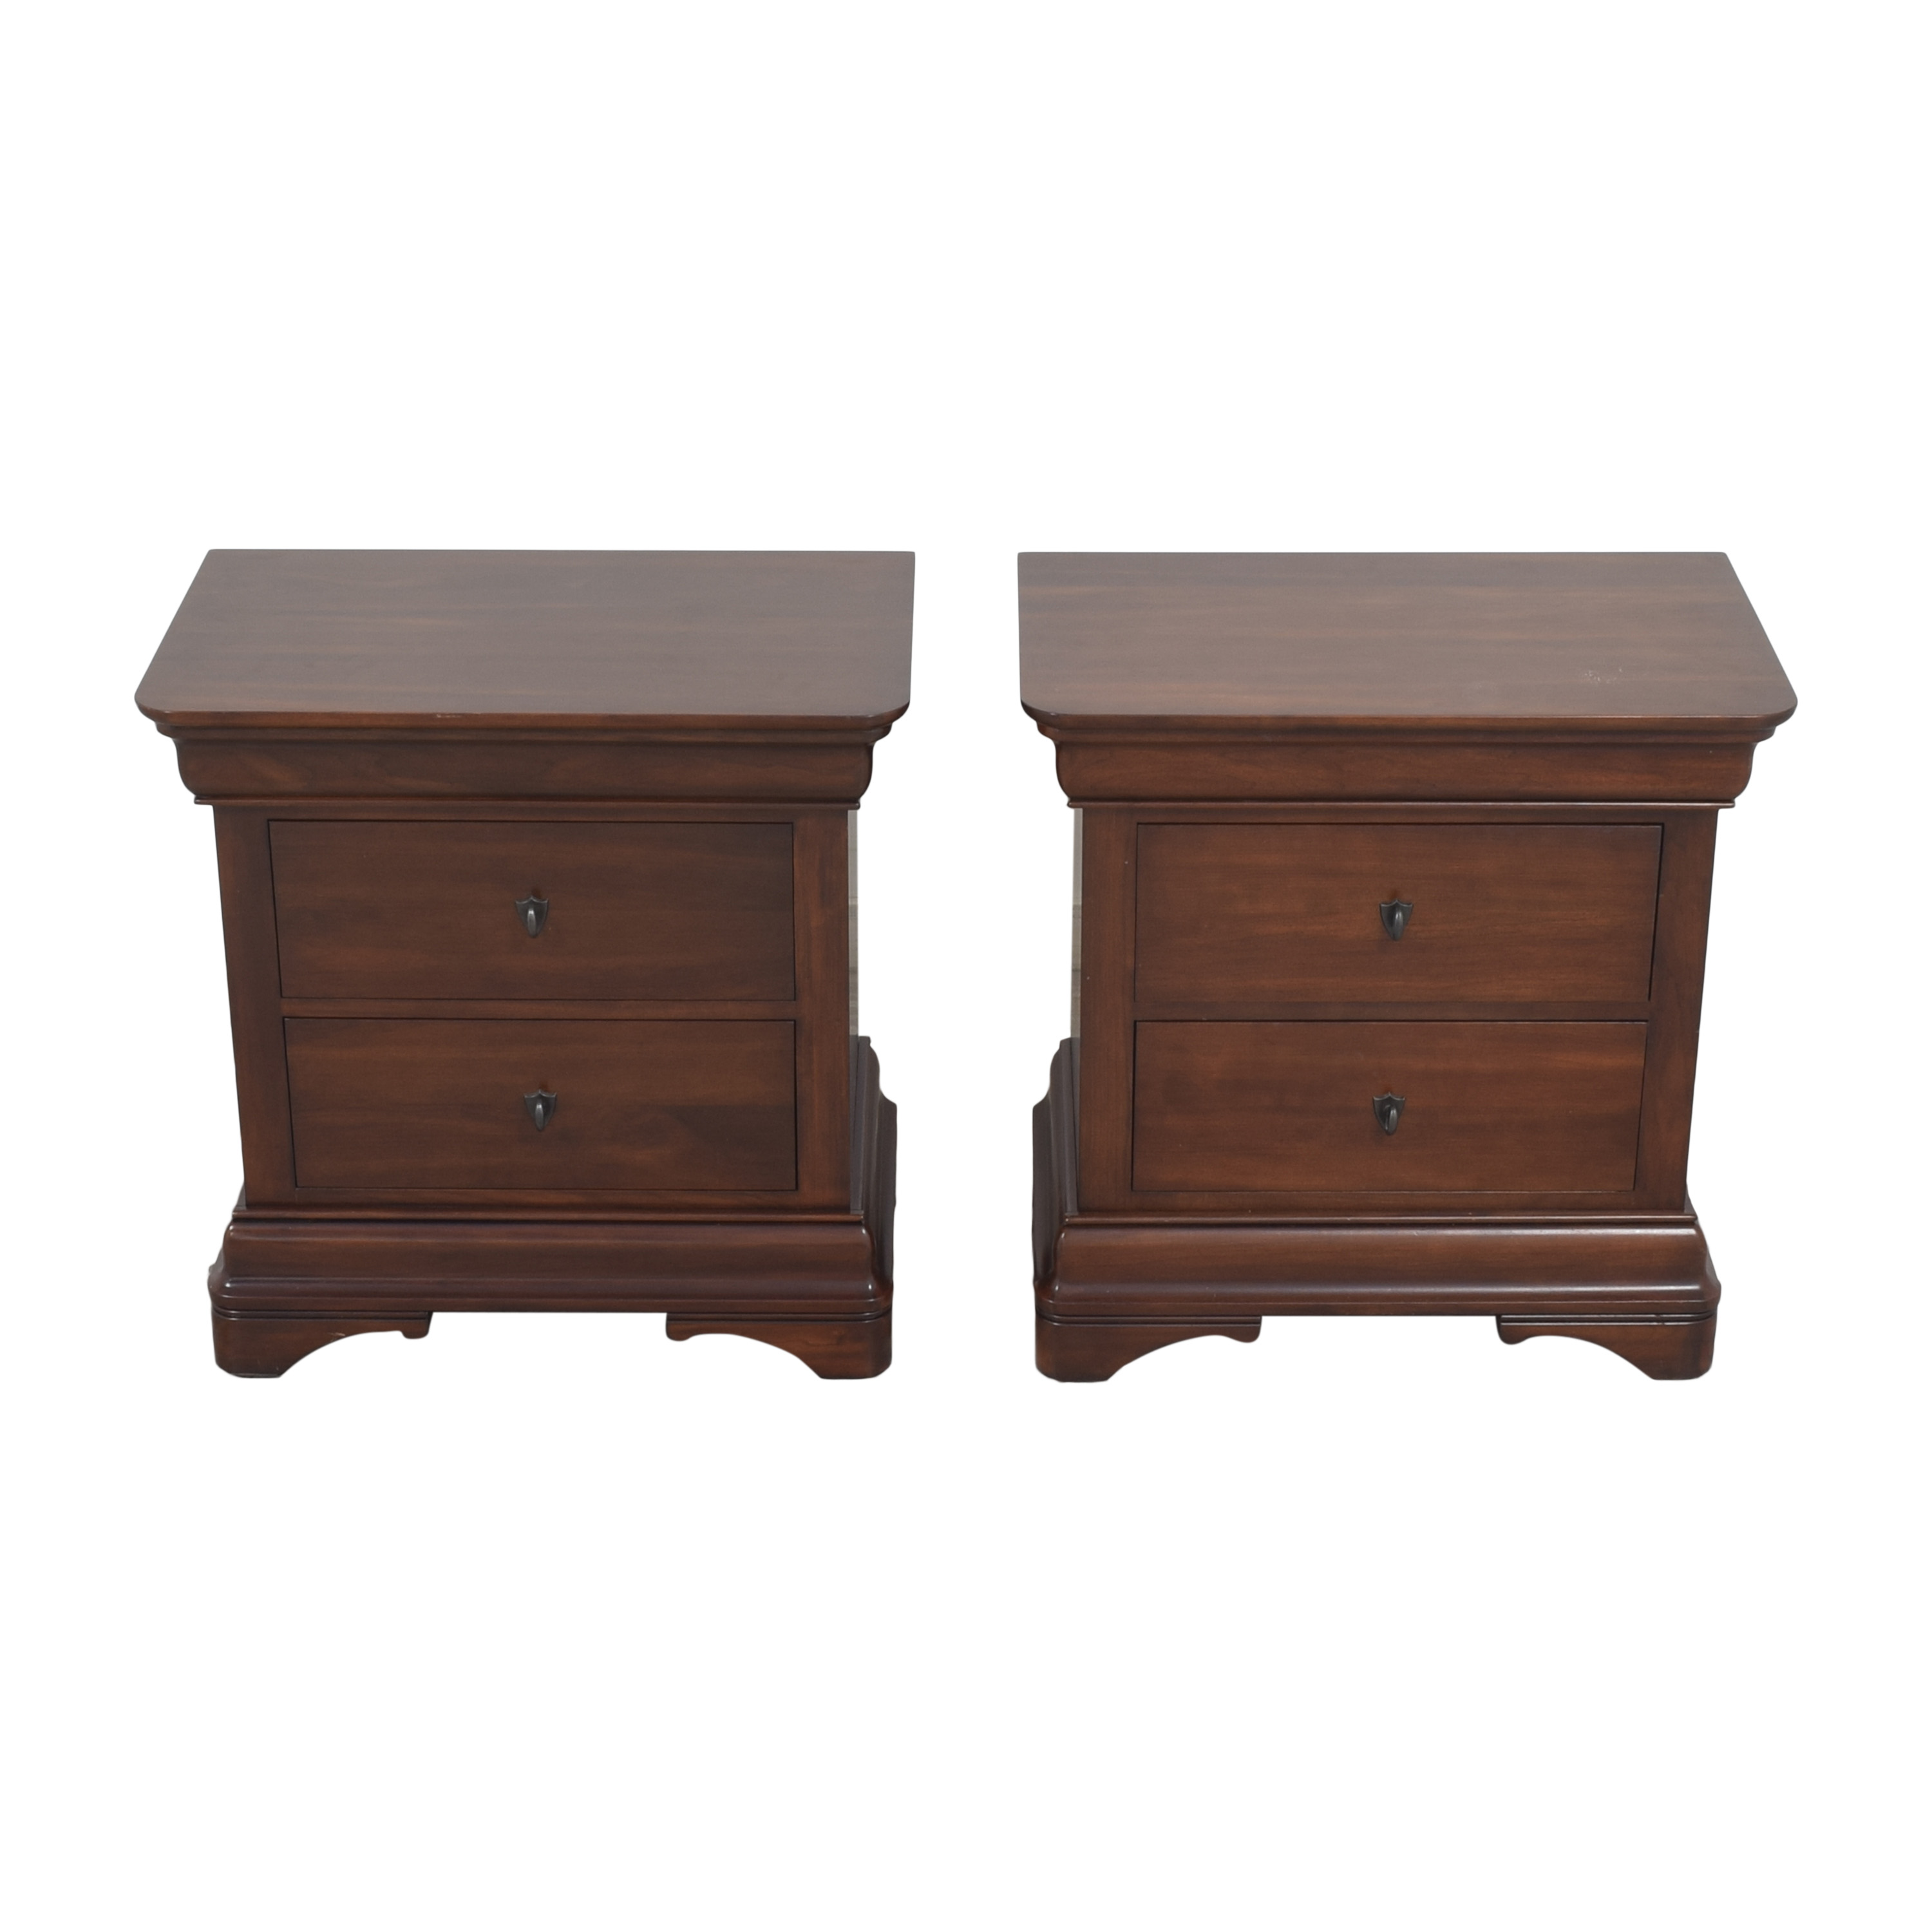 buy Nichols & Stone Marseilles Two Drawer Nightstands Nichols & Stone End Tables